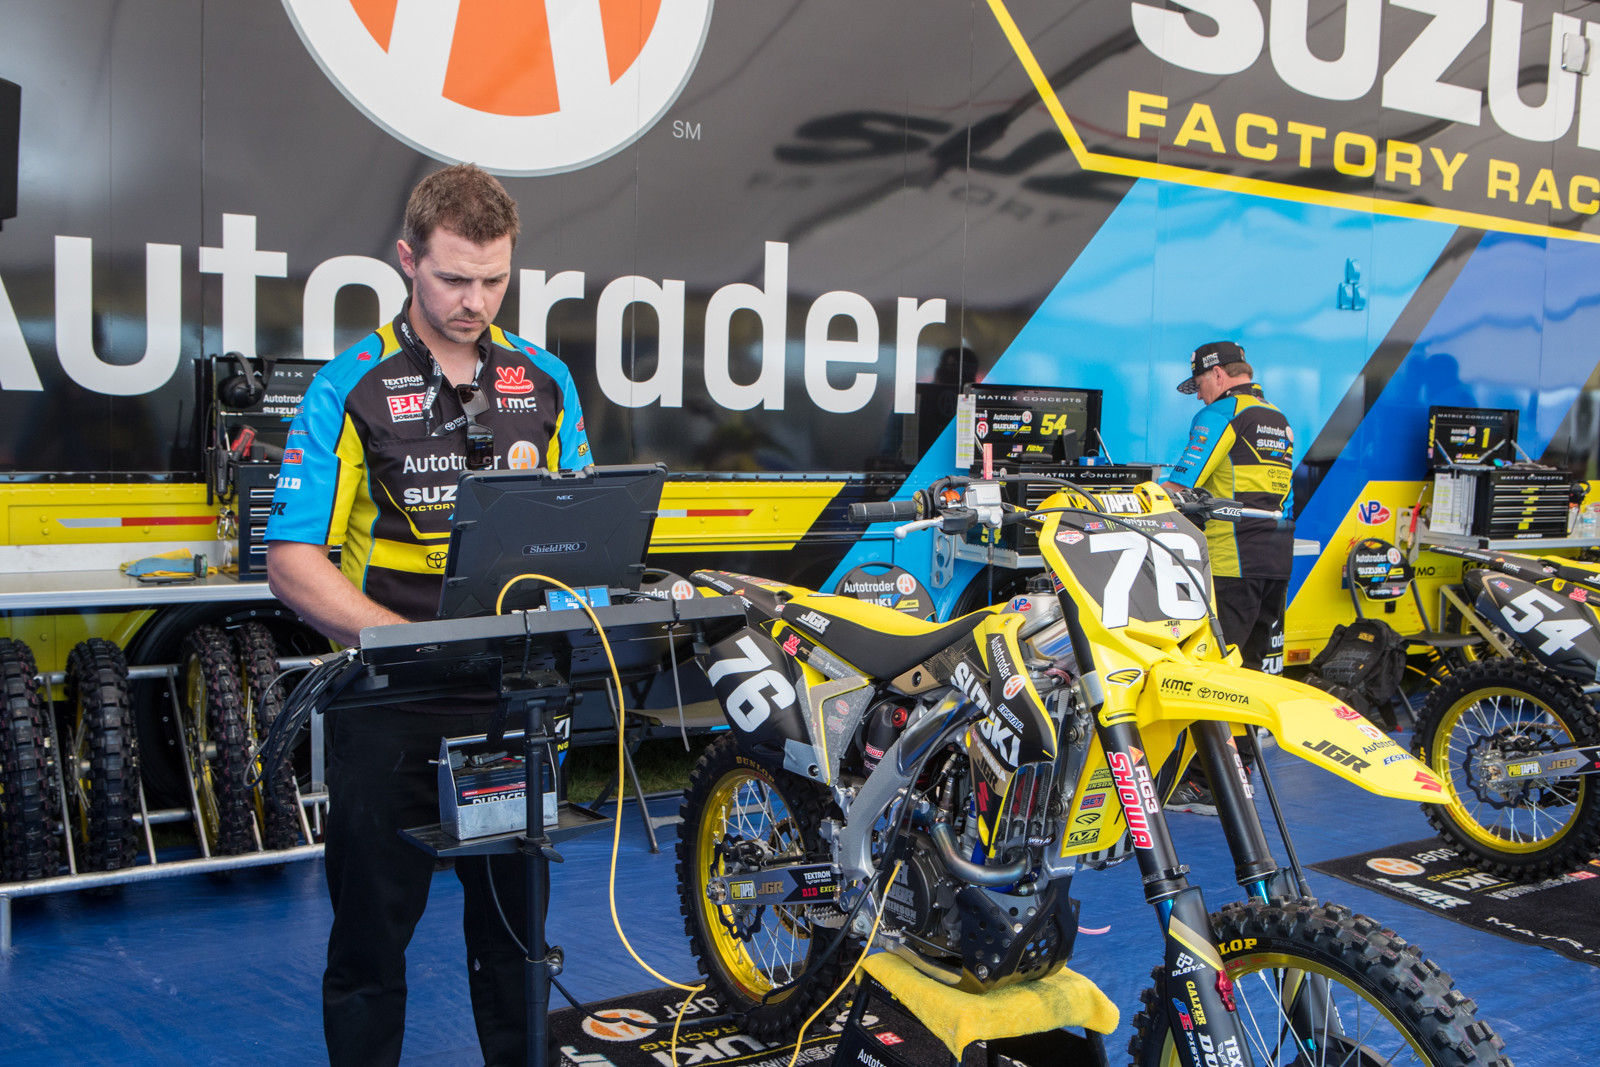 These days, laptops are nearly a requirement to keep these bikes in top shape.